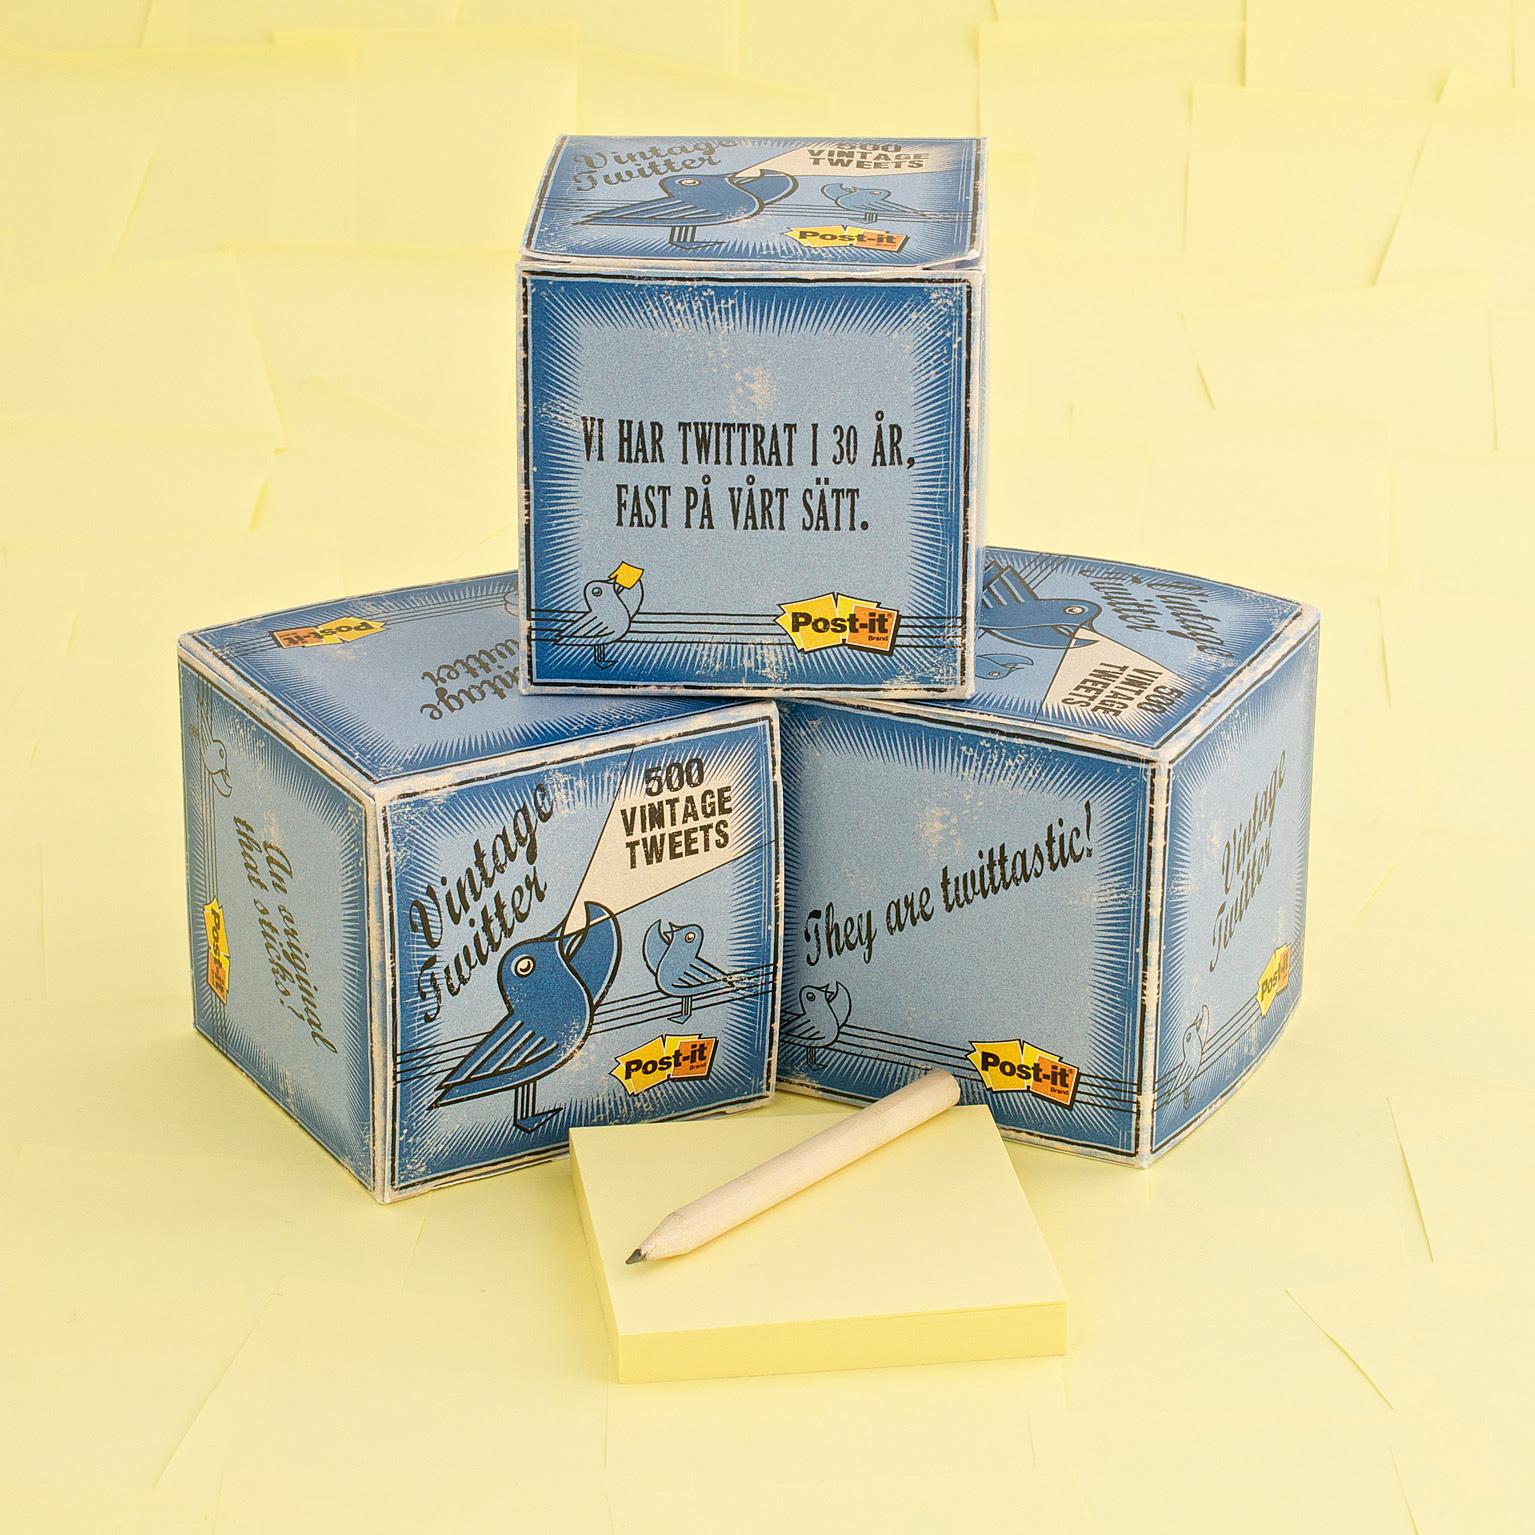 Post-it Brand Direct Ad -  Vintage Twitter